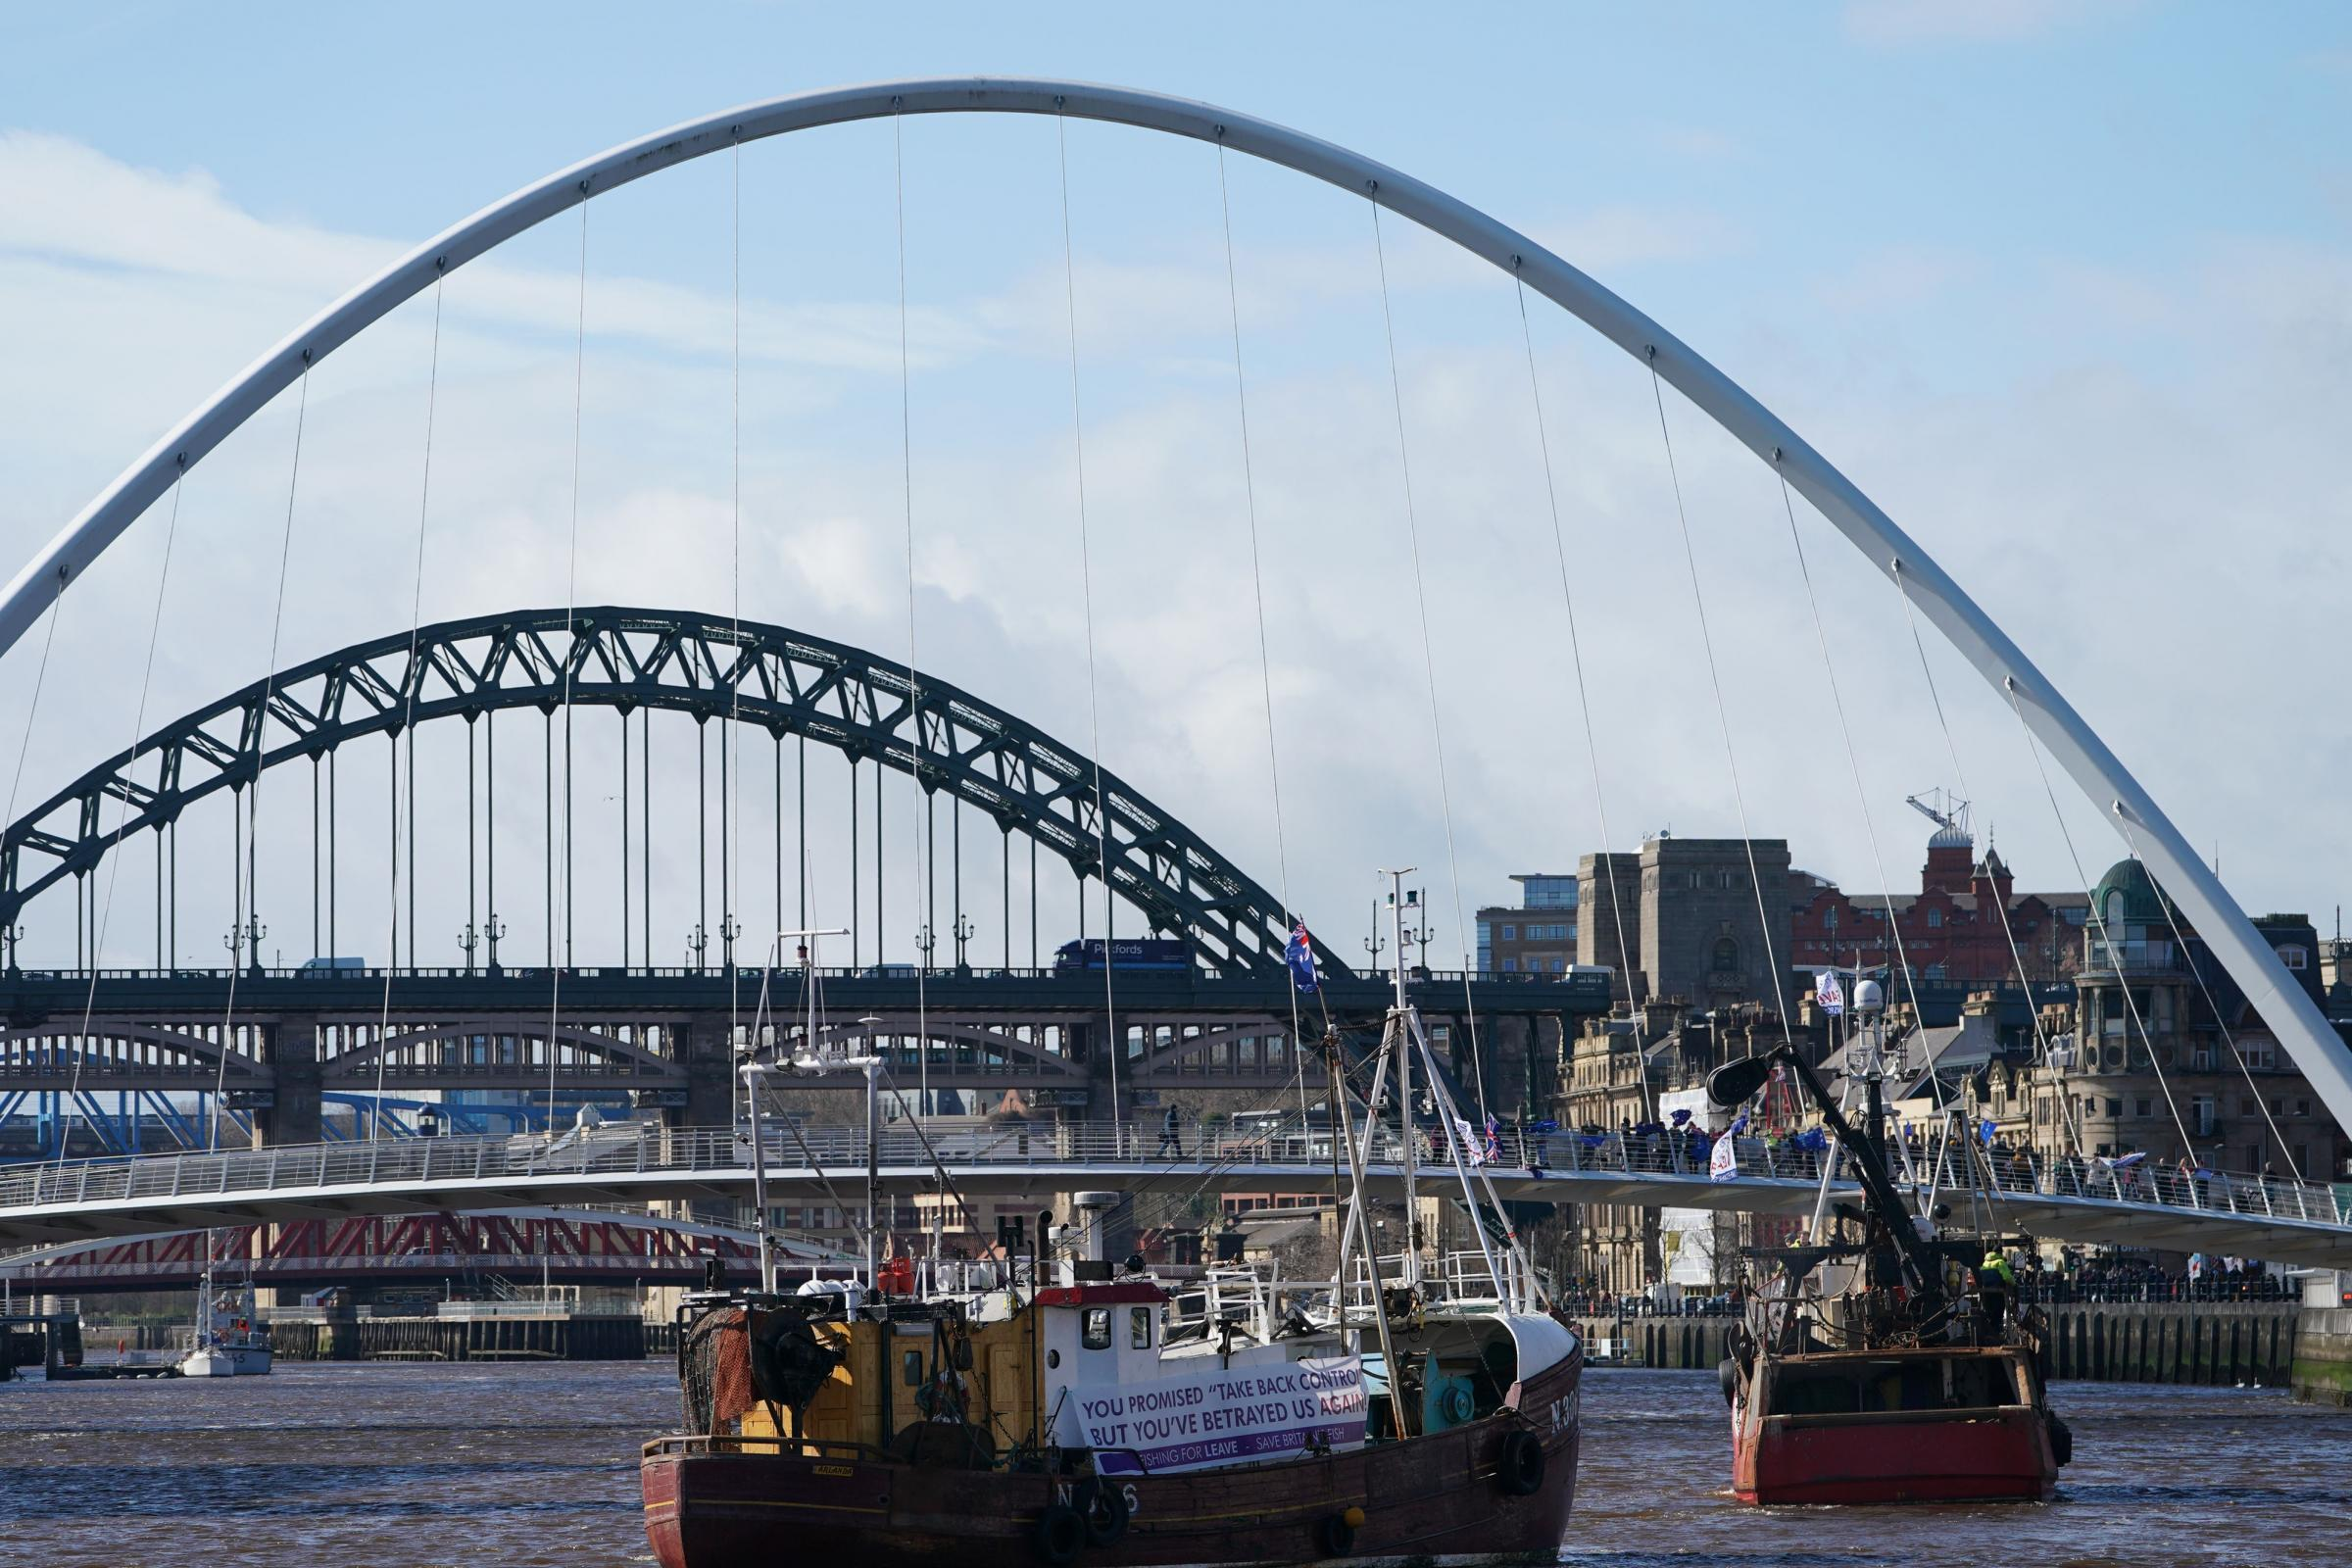 Fishing boats sail up the River Tyne in support of Brexit